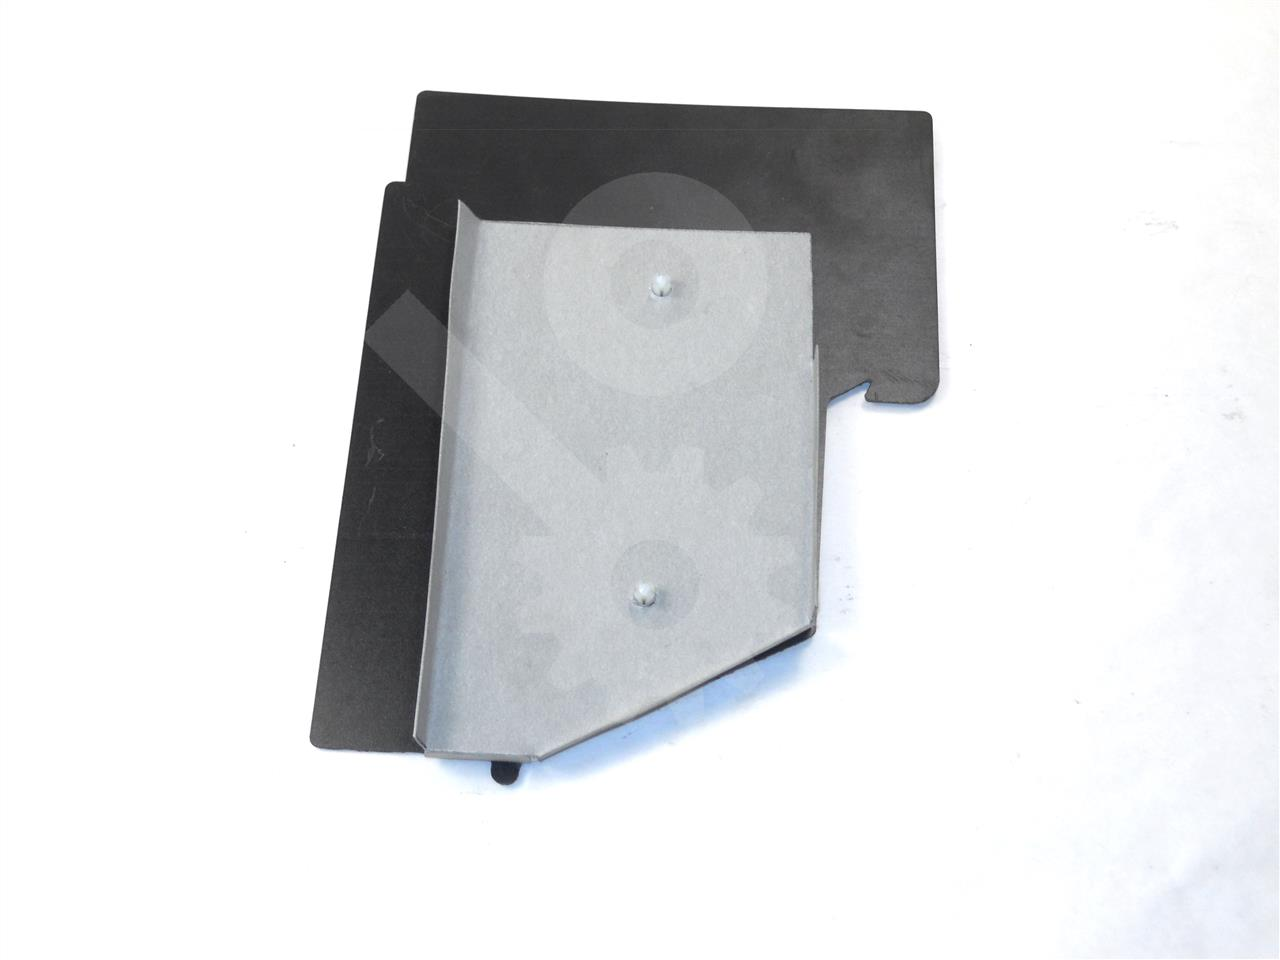 192A9649P2 GE / General Electric VERTICAL OUTER PHASE BARRIER FOR AKR-30 / AKR-50